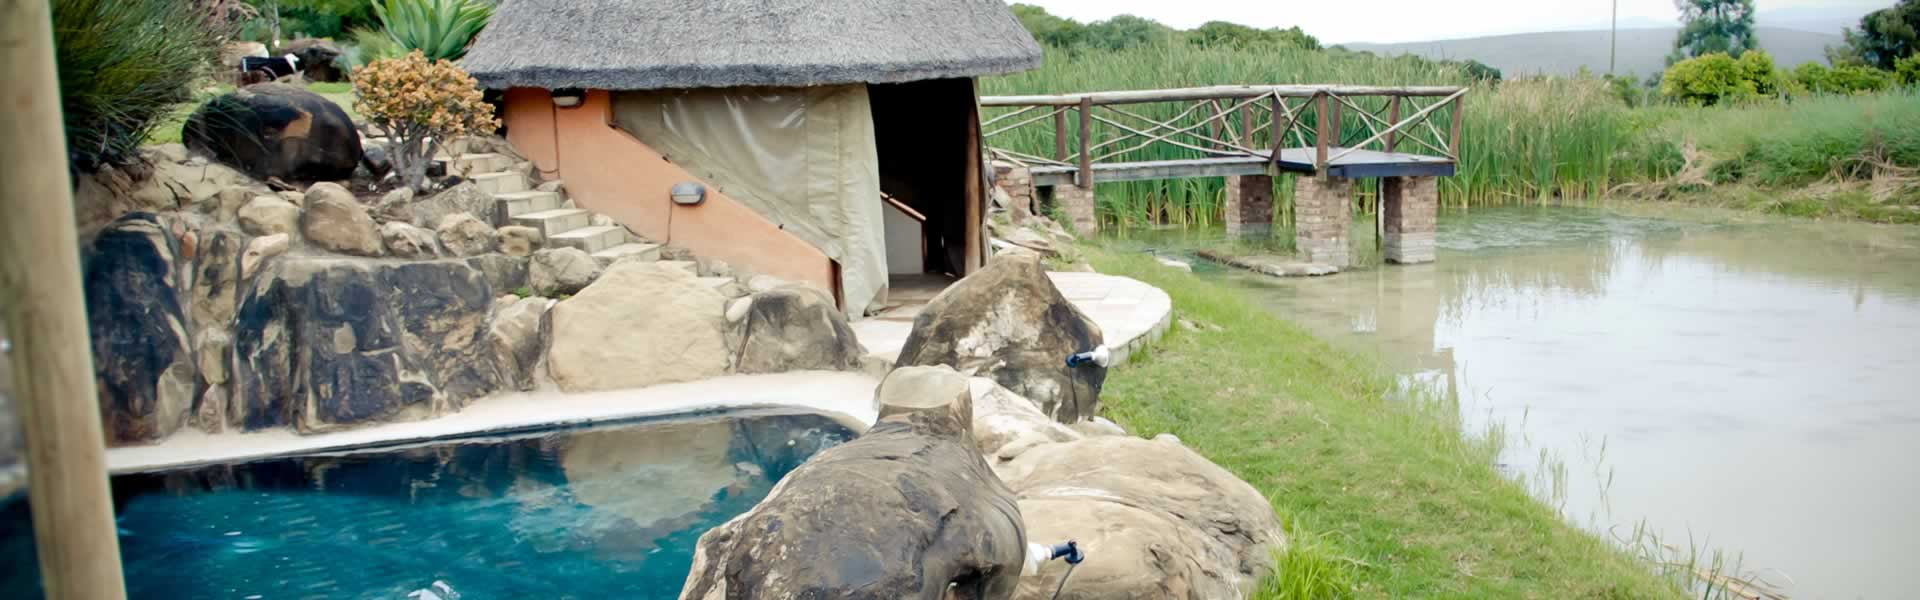 About Addo Dung Beetle Guest Farm